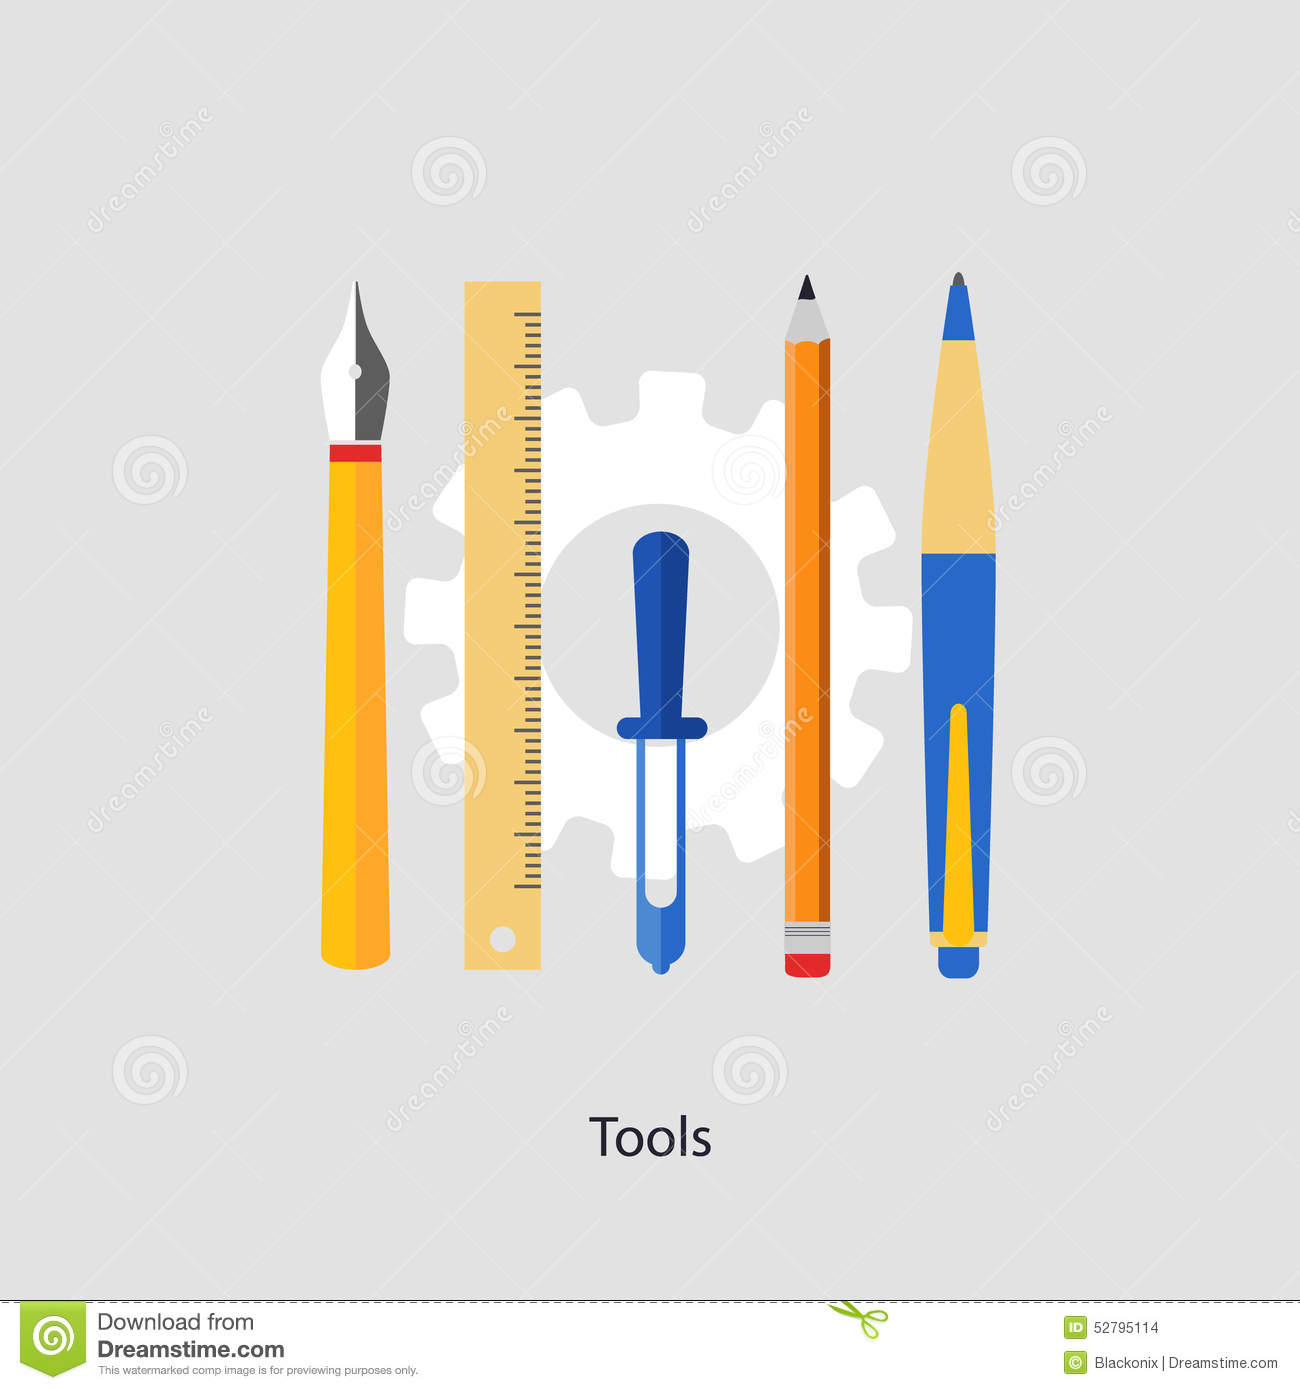 Tools stock illustration image 52795114 for Application design tools